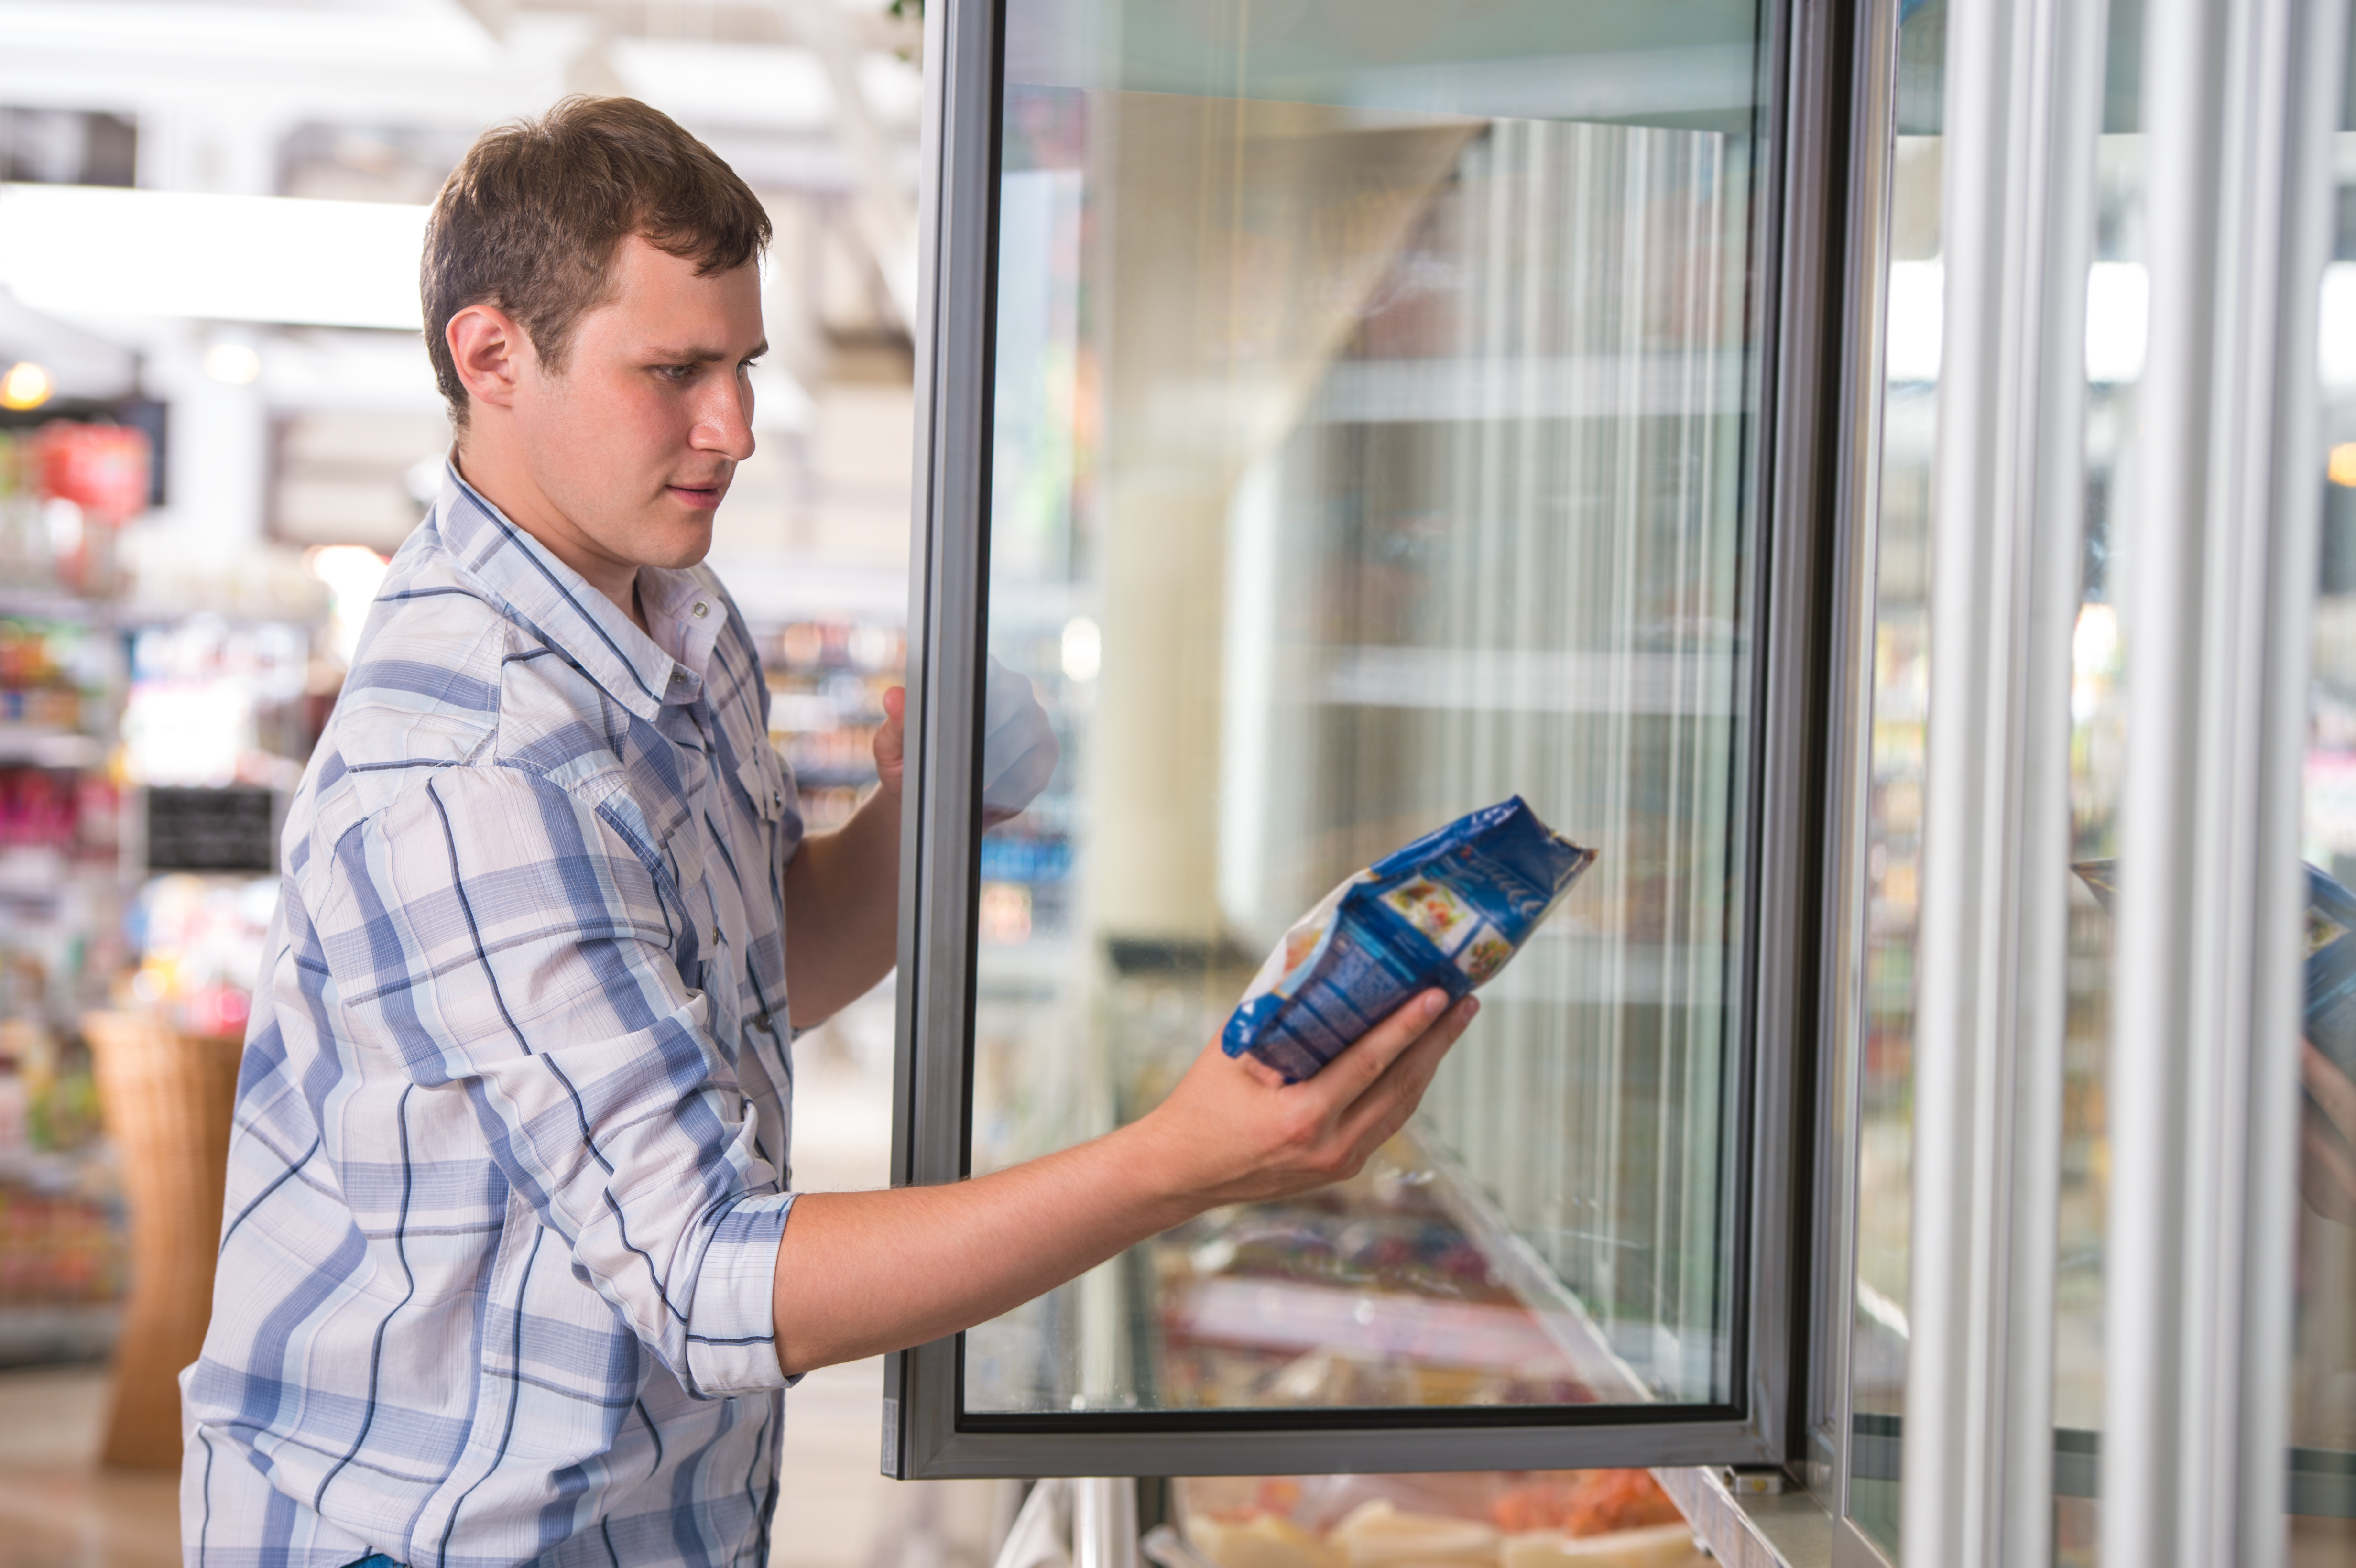 Man in a supermarket standing in front of the freezer